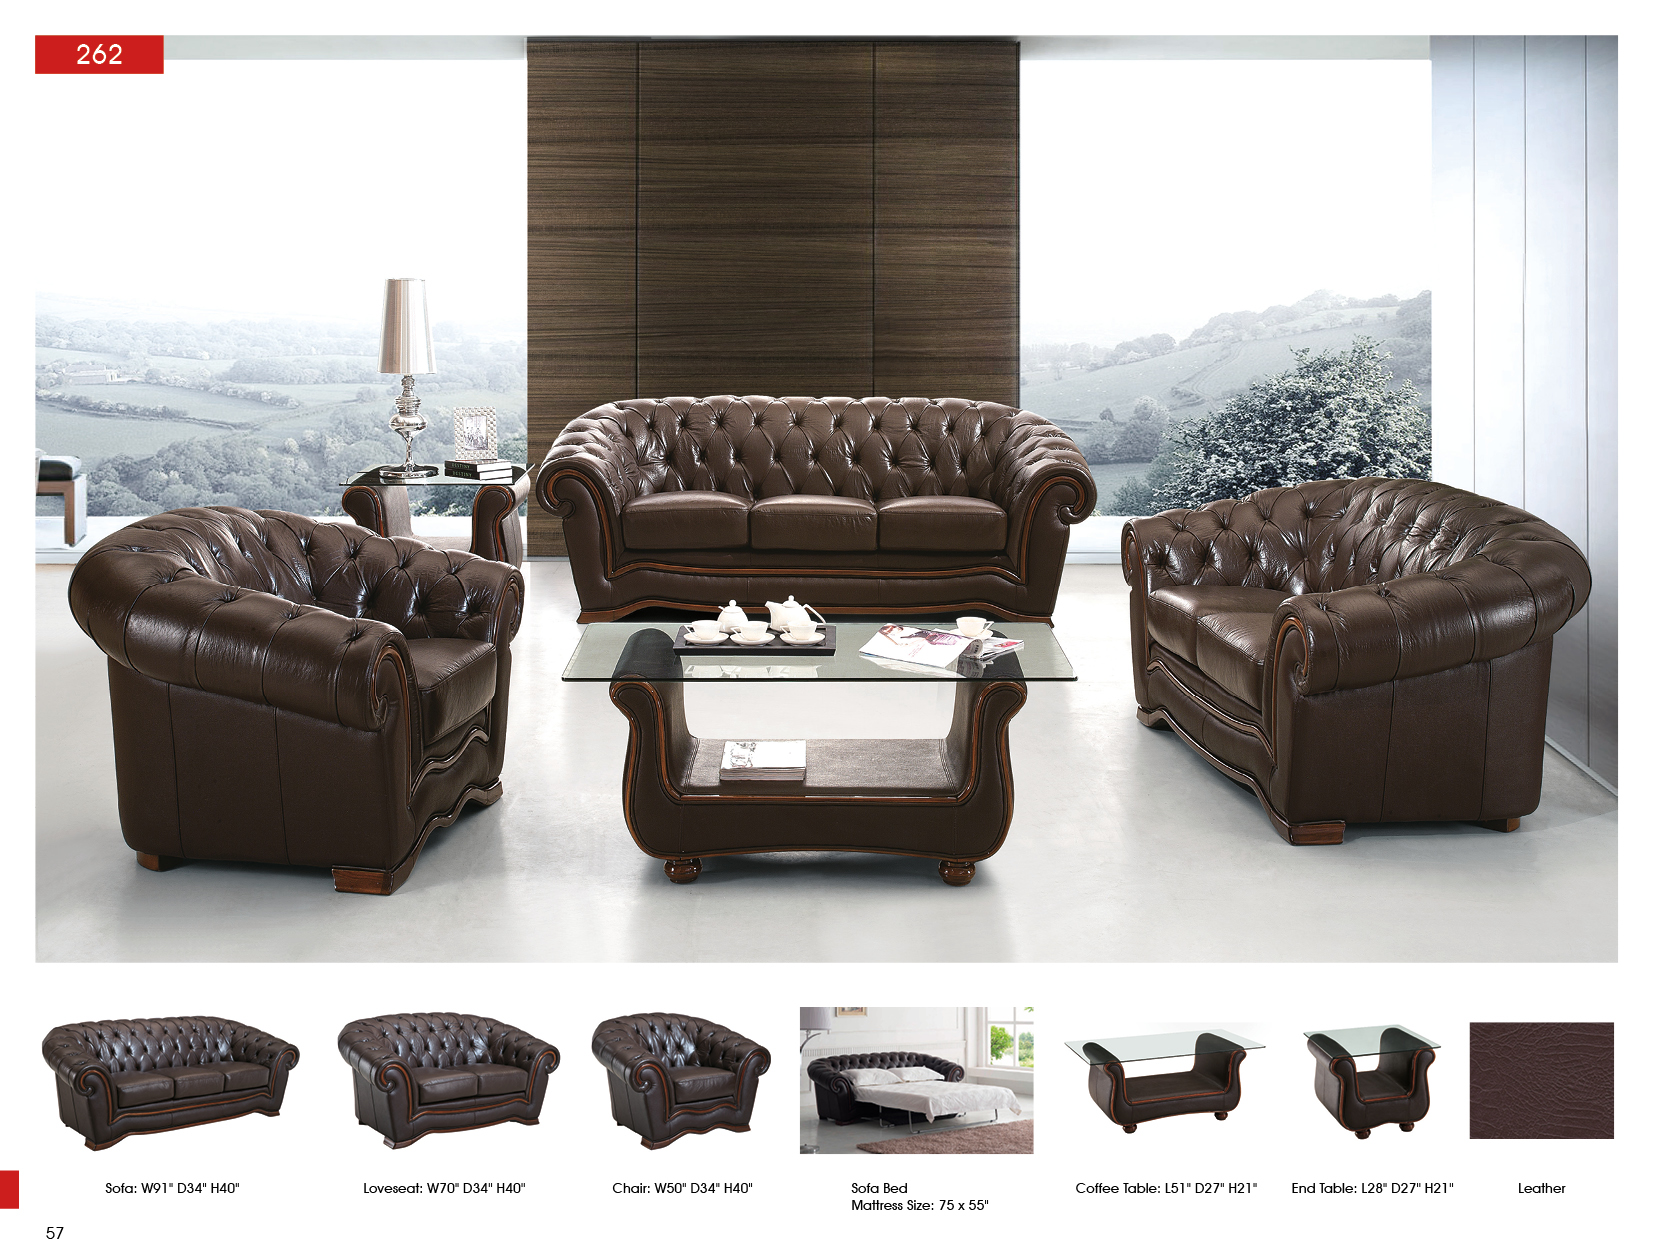 262 Full Leather Sofas Loveseats And Chairs Living Room